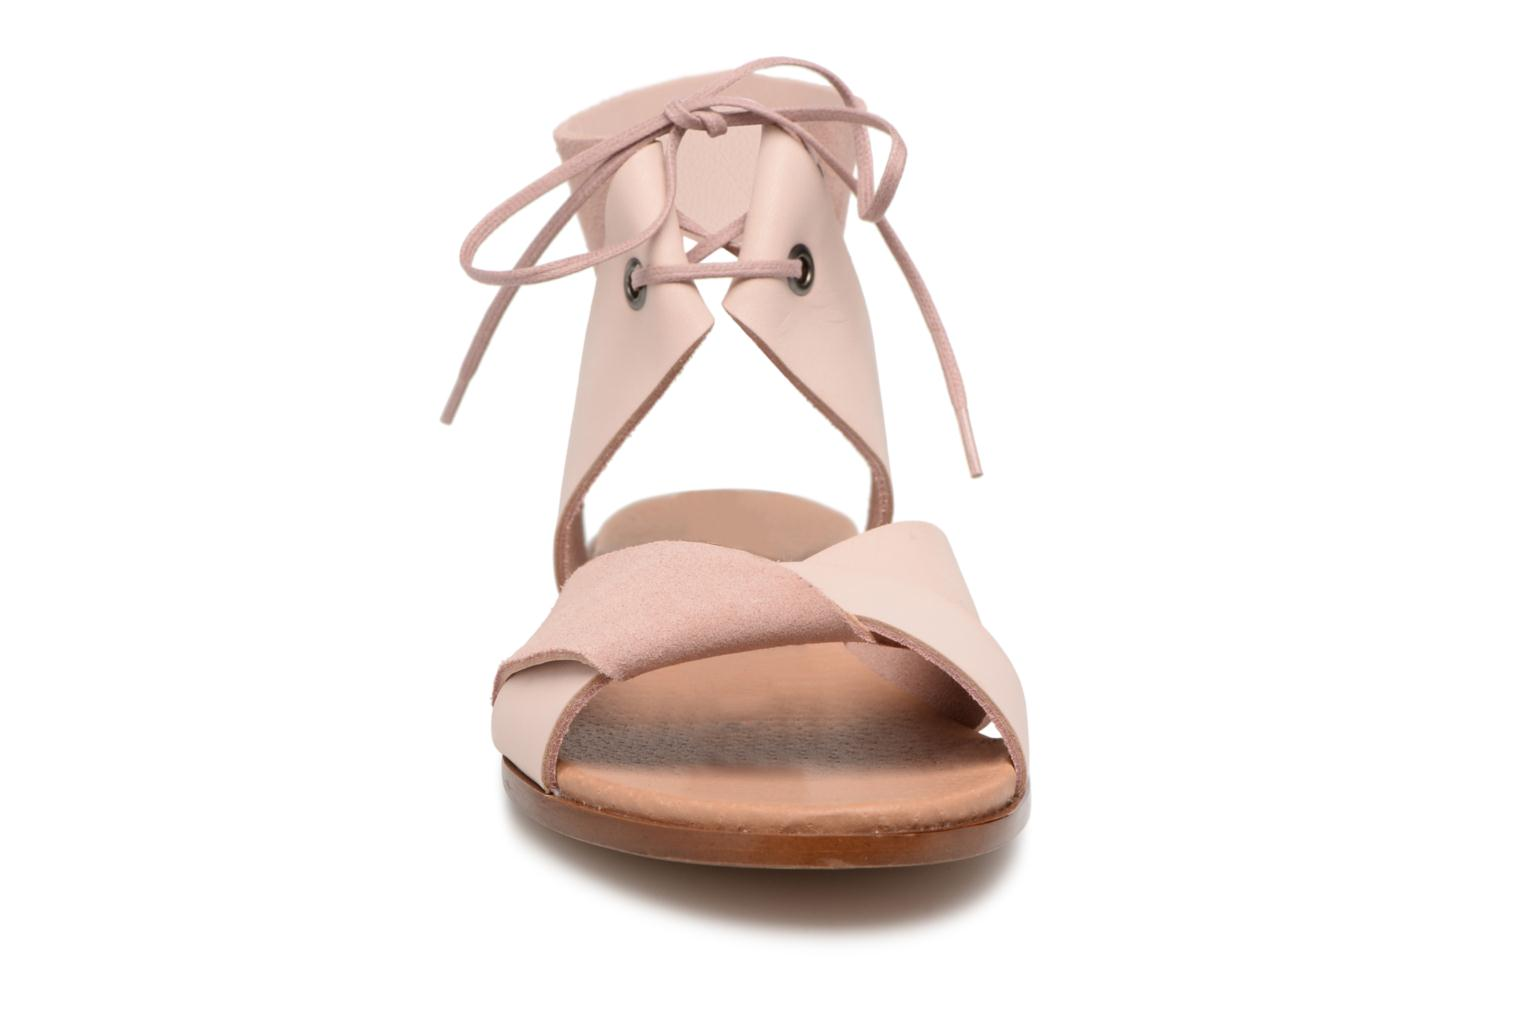 bear Shoe L MONA the Pale 291 Blush ppwnr5qT8Z